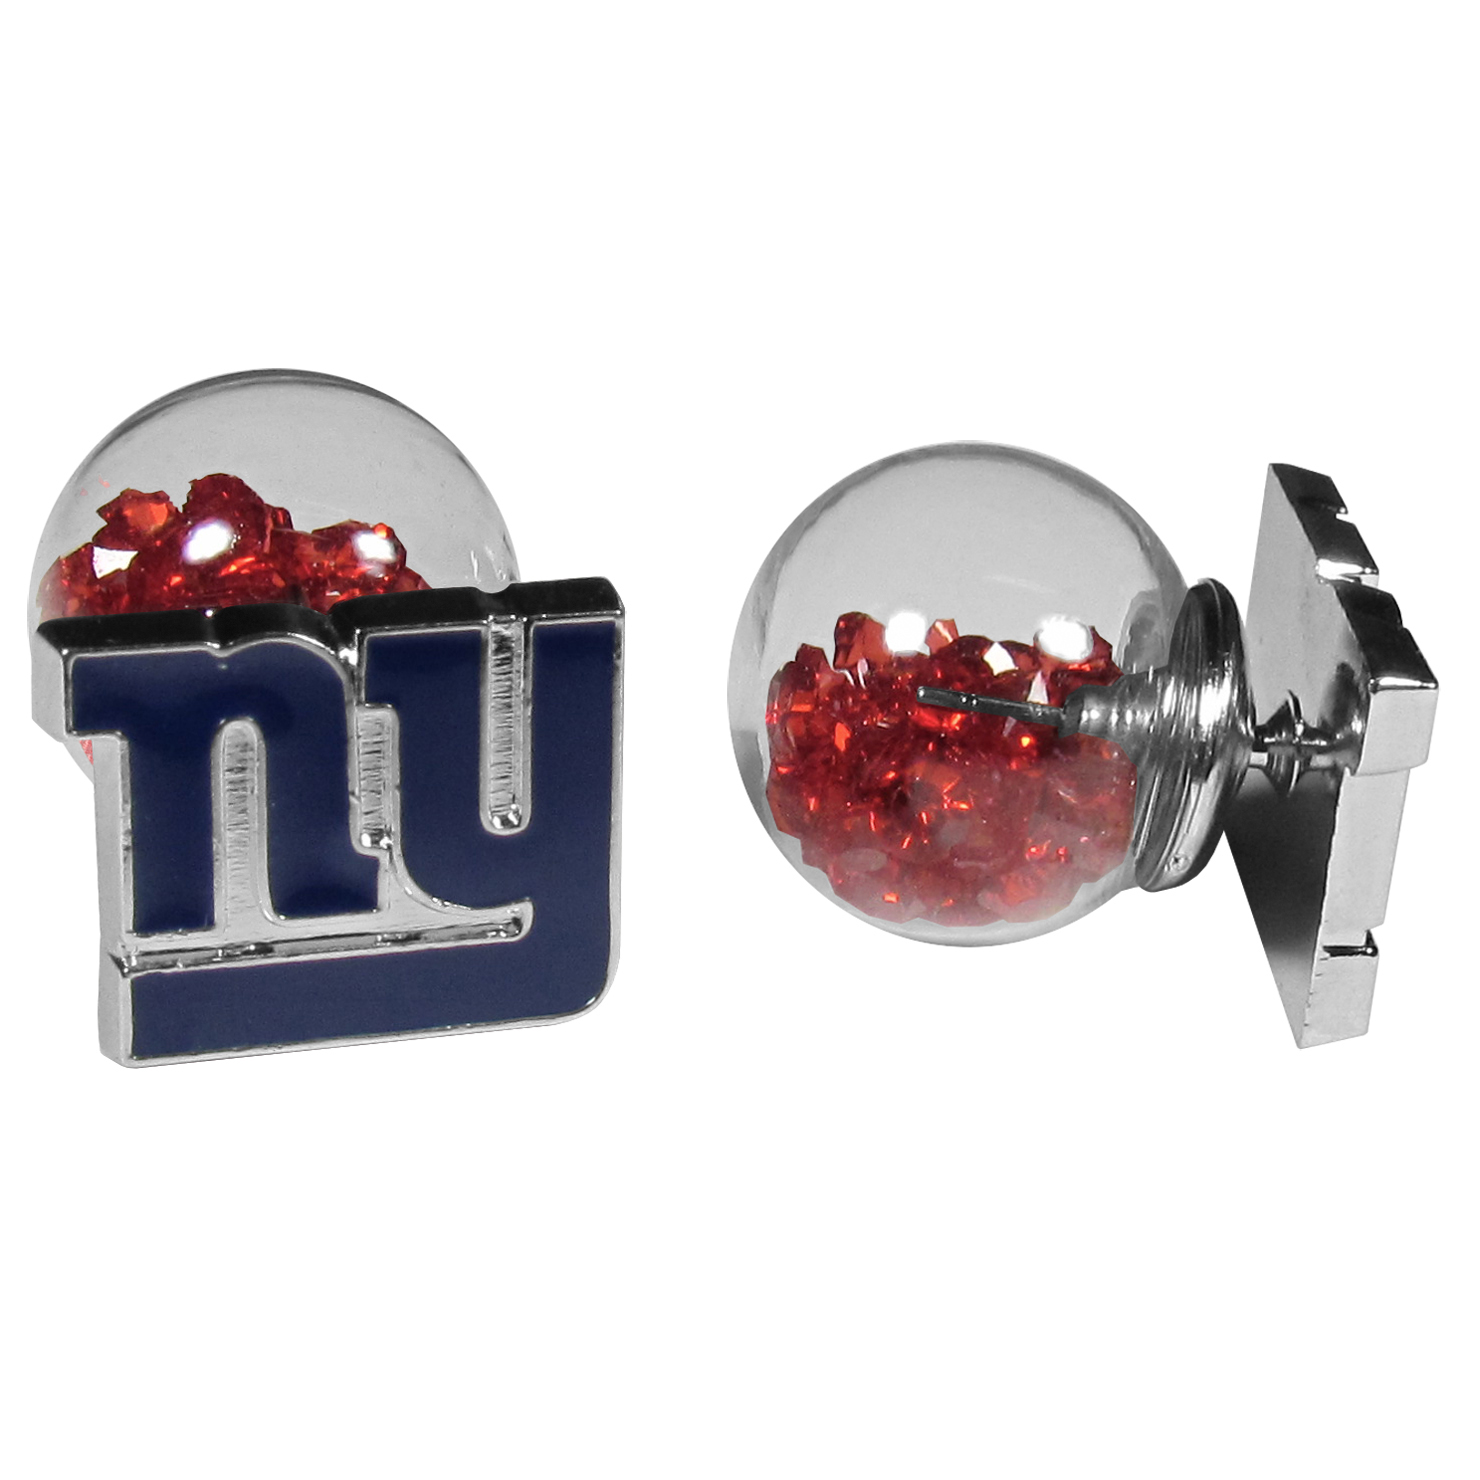 New York Giants Front/Back Earrings - Get in on one of the most popular trends in jewelry, front and back earrings! This must-have style is all of over the red carpets and we taken this contemporary look and paired it with your love of the New York Giants! The front of the earring is a sporty team logo and the back of these eye-catching earrings is a glass ball filled with colored crystal beads. This piece is perfect for a fashion-forward fan, with bold taste and trend-setting style.